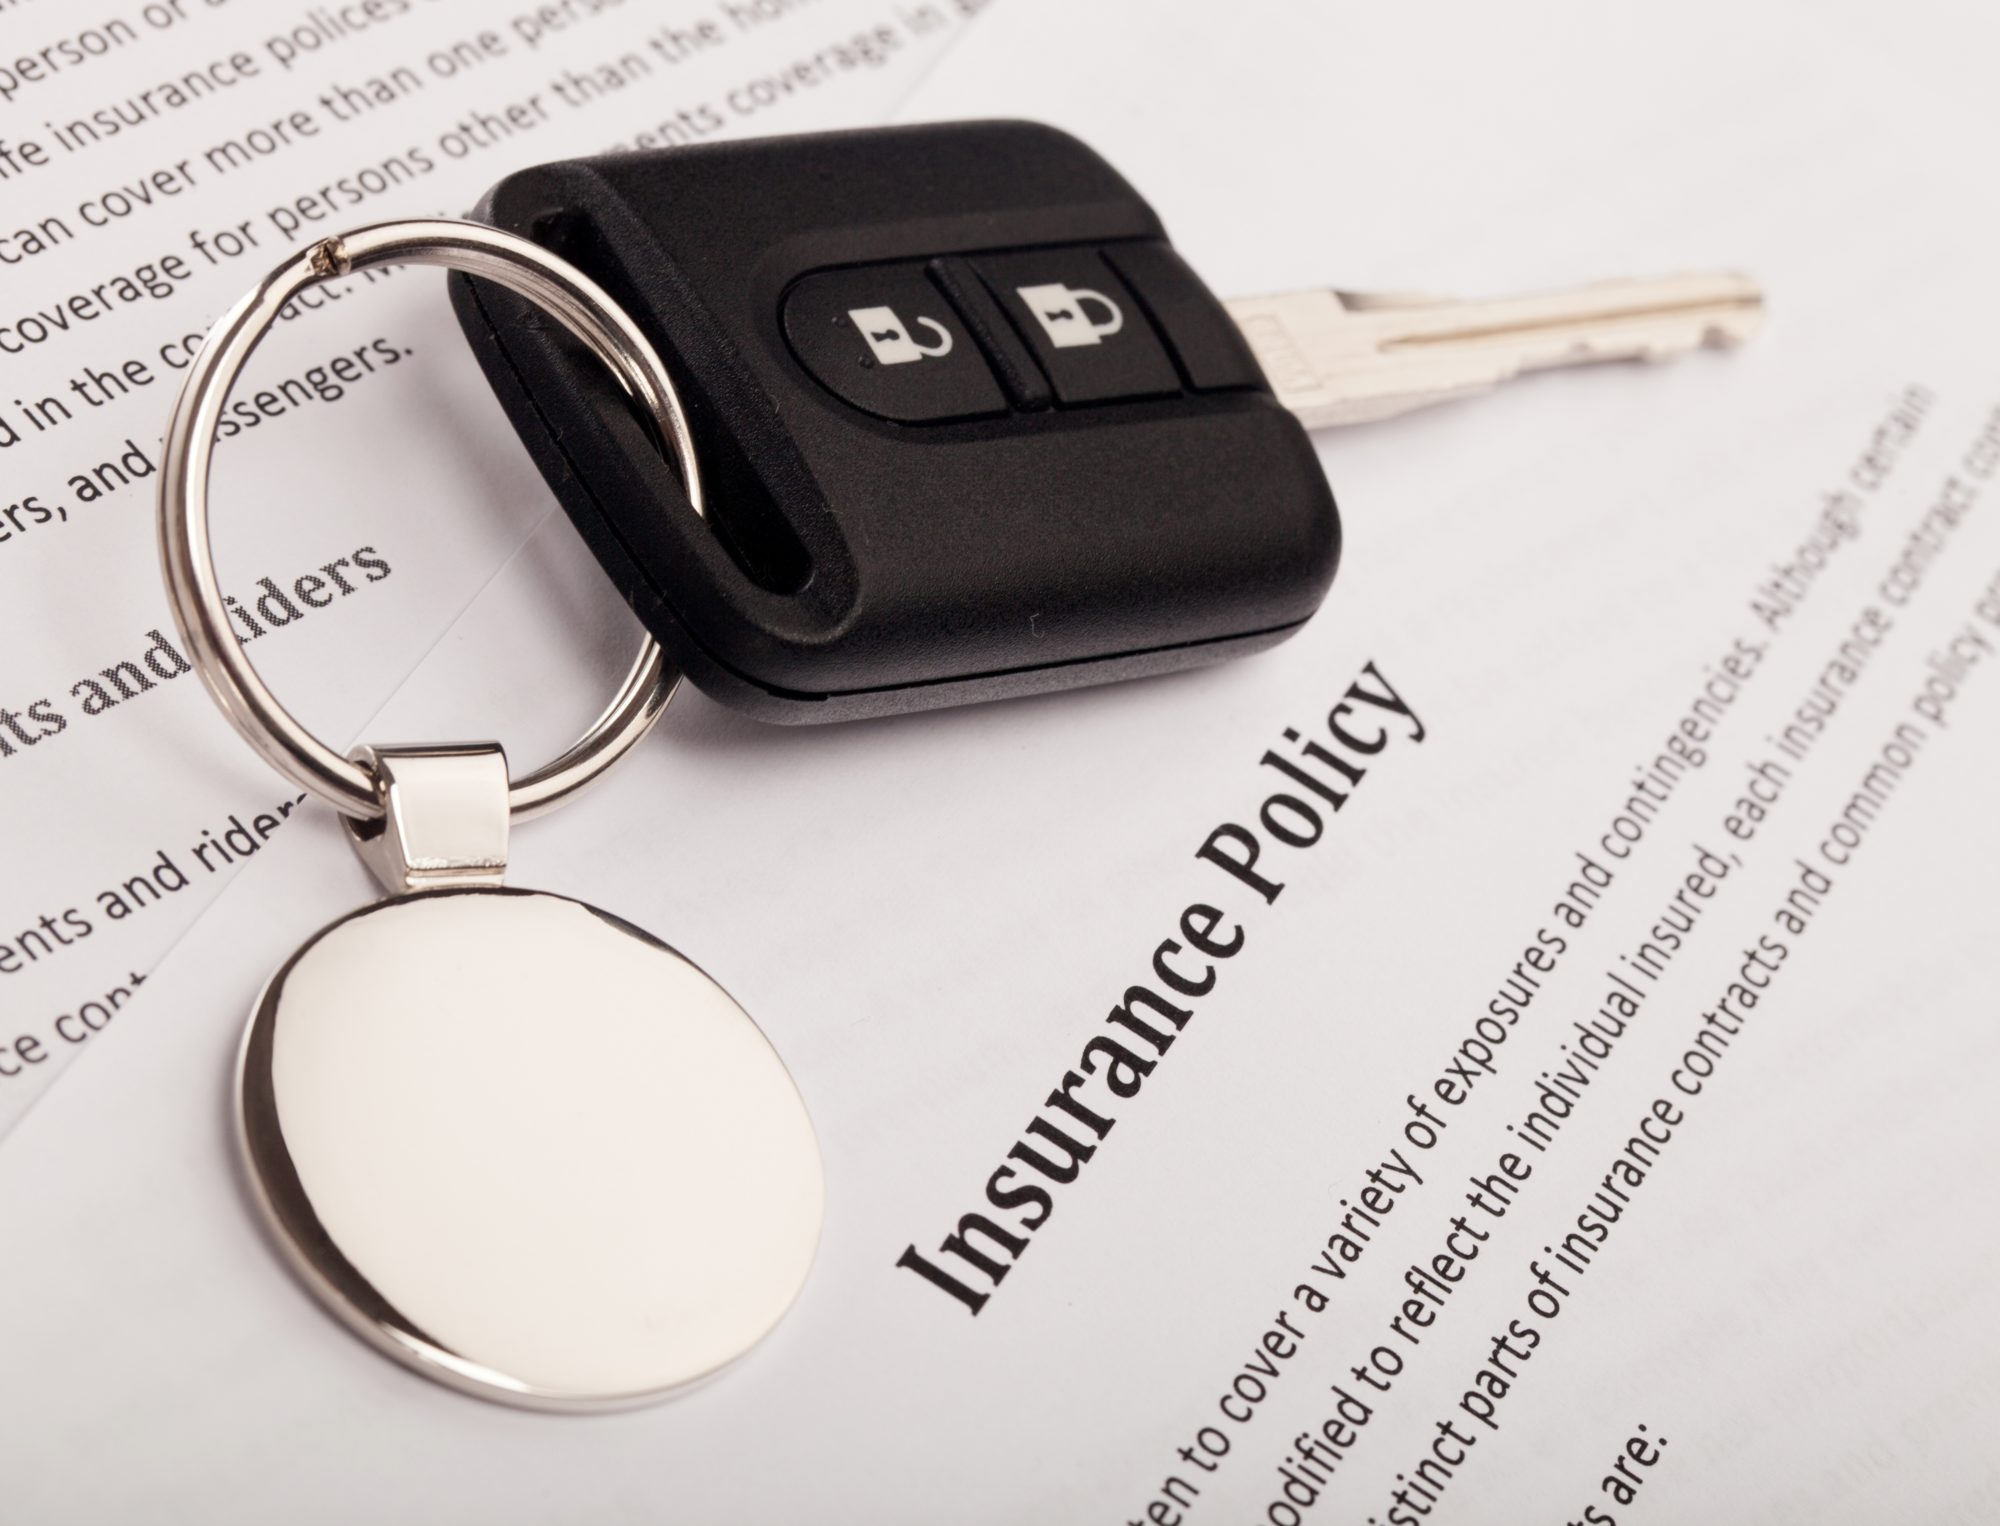 Ontario Wants To Hear From Consumers About How To Lower Auto Rates Canadian Underwriter